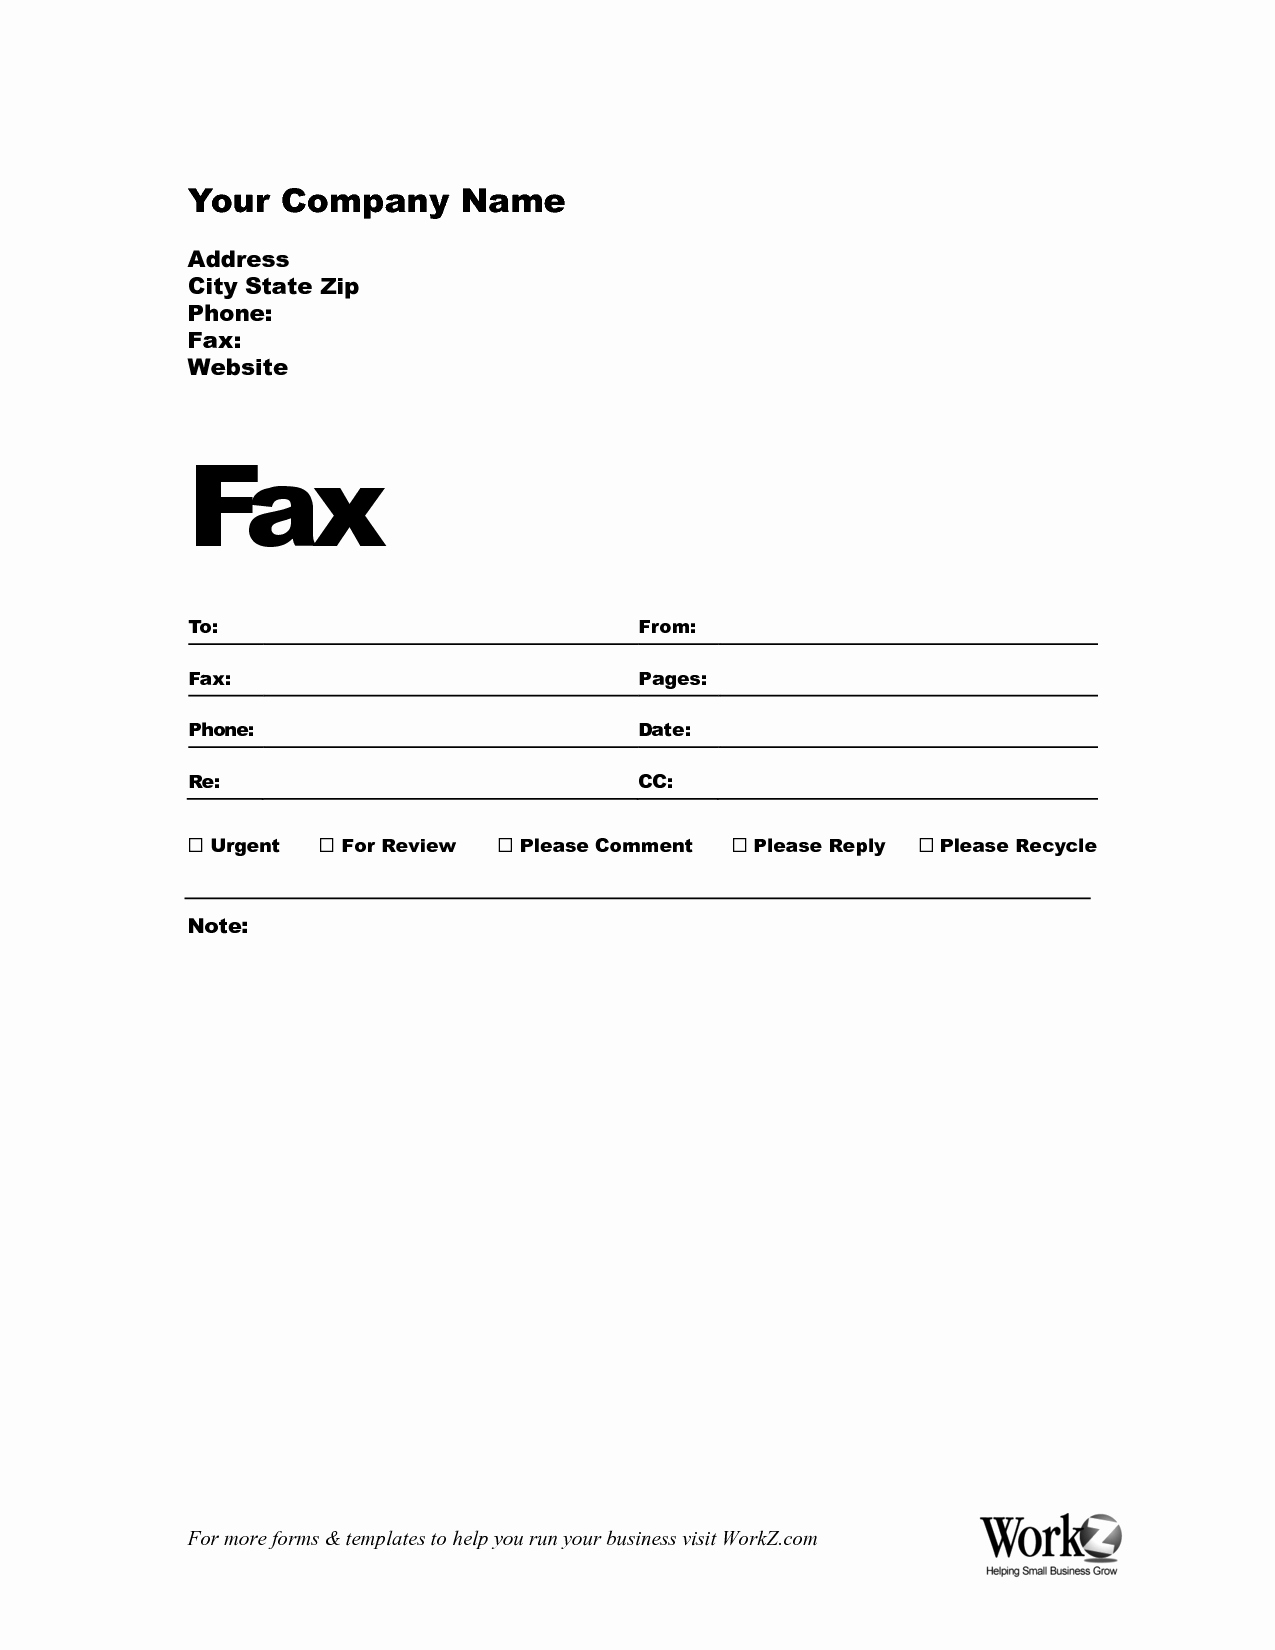 How to Fax Cover Sheet Beautiful Free Fax Cover Sheet Template Bamboodownunder